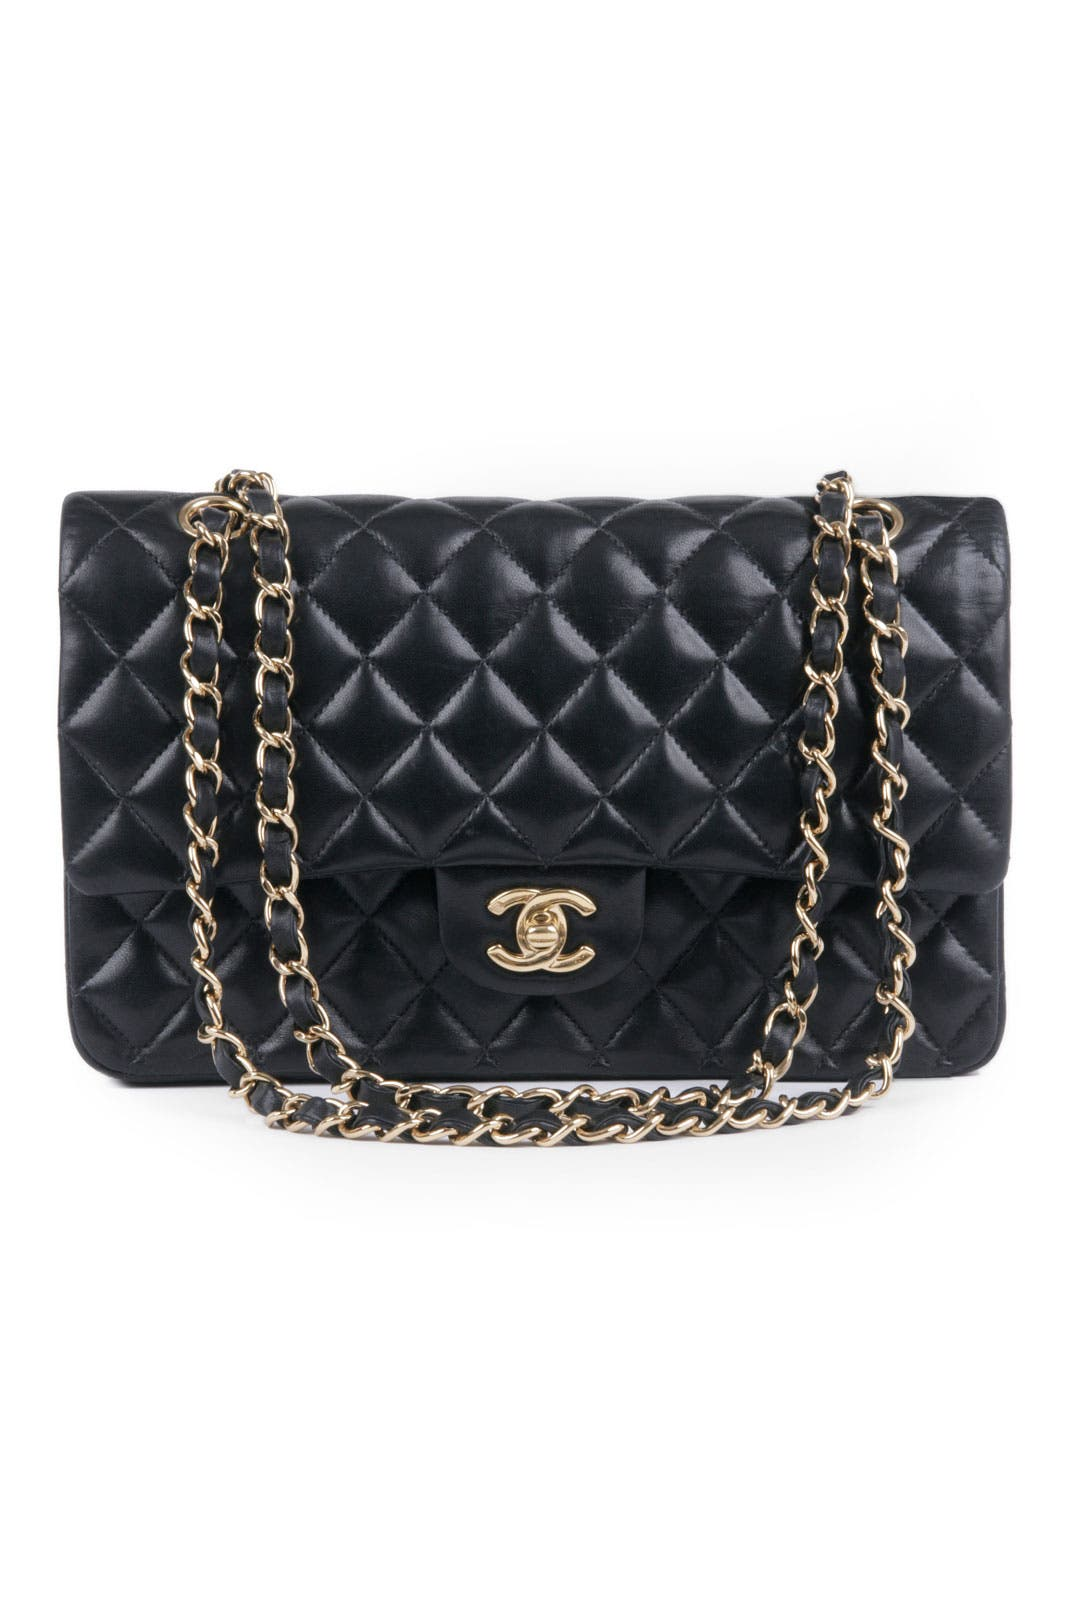 Vintage Chanel Classic Black Coco Bag by WGACA Vintage